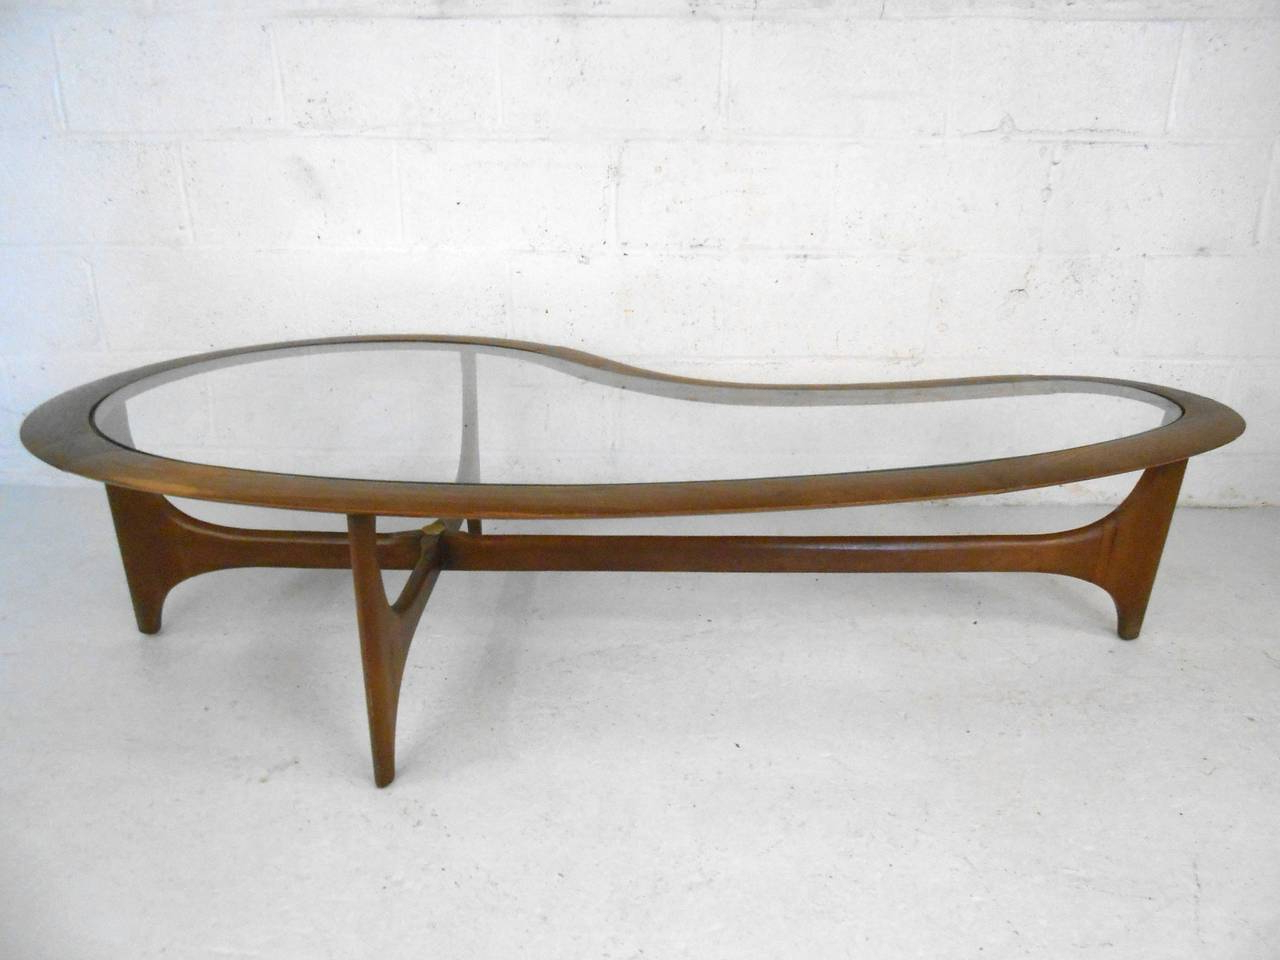 Best And Newest Furniture: Alluring Kidney Shaped Coffee Table With Futuristic Intended For Jelly Bean Coffee Tables (View 2 of 20)